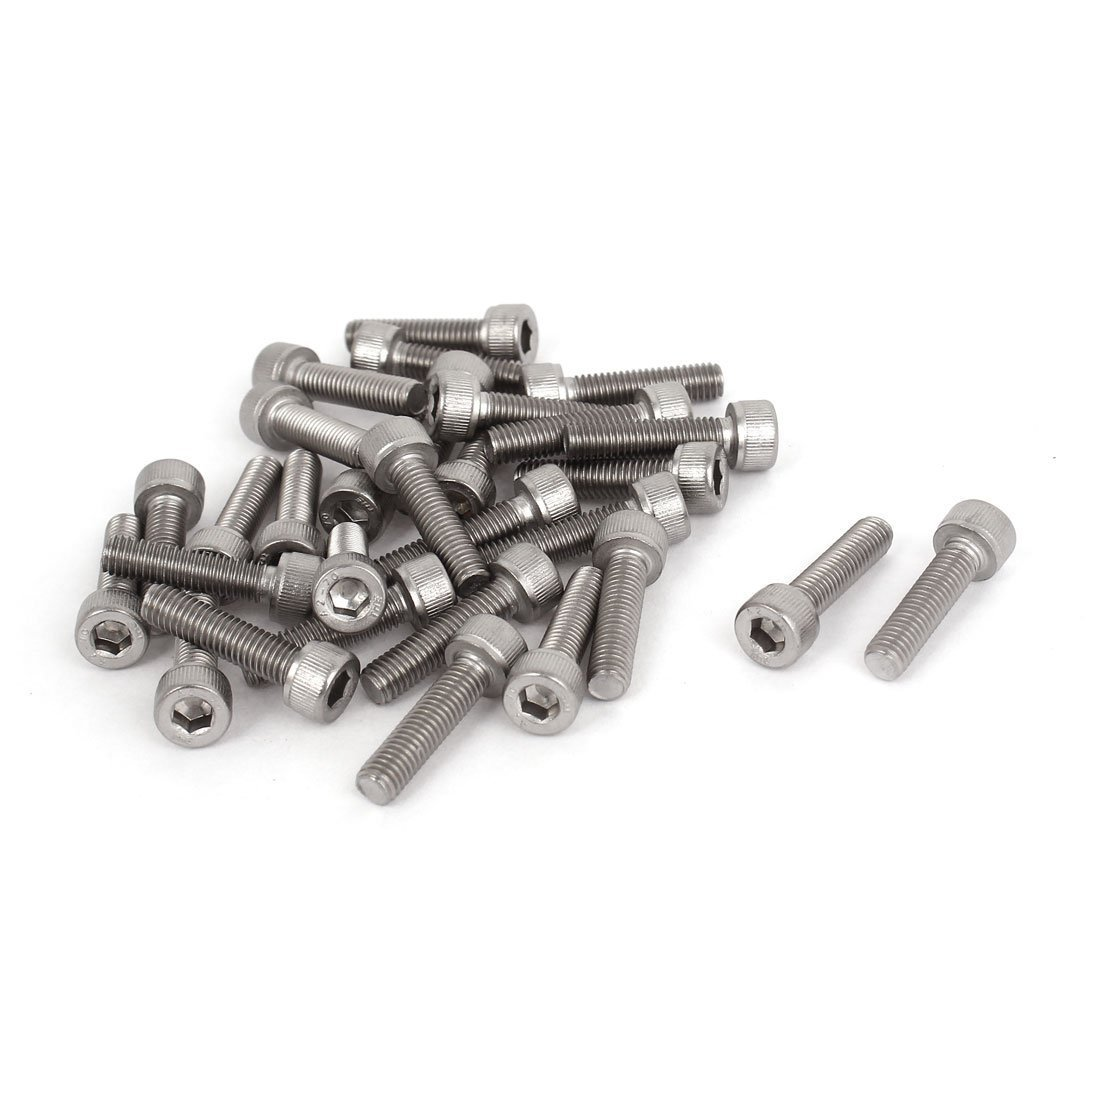 uxcell 0.8mm Pitch M5x20mm Stainless Steel Hex Socket Head Cap Screws 30pcs